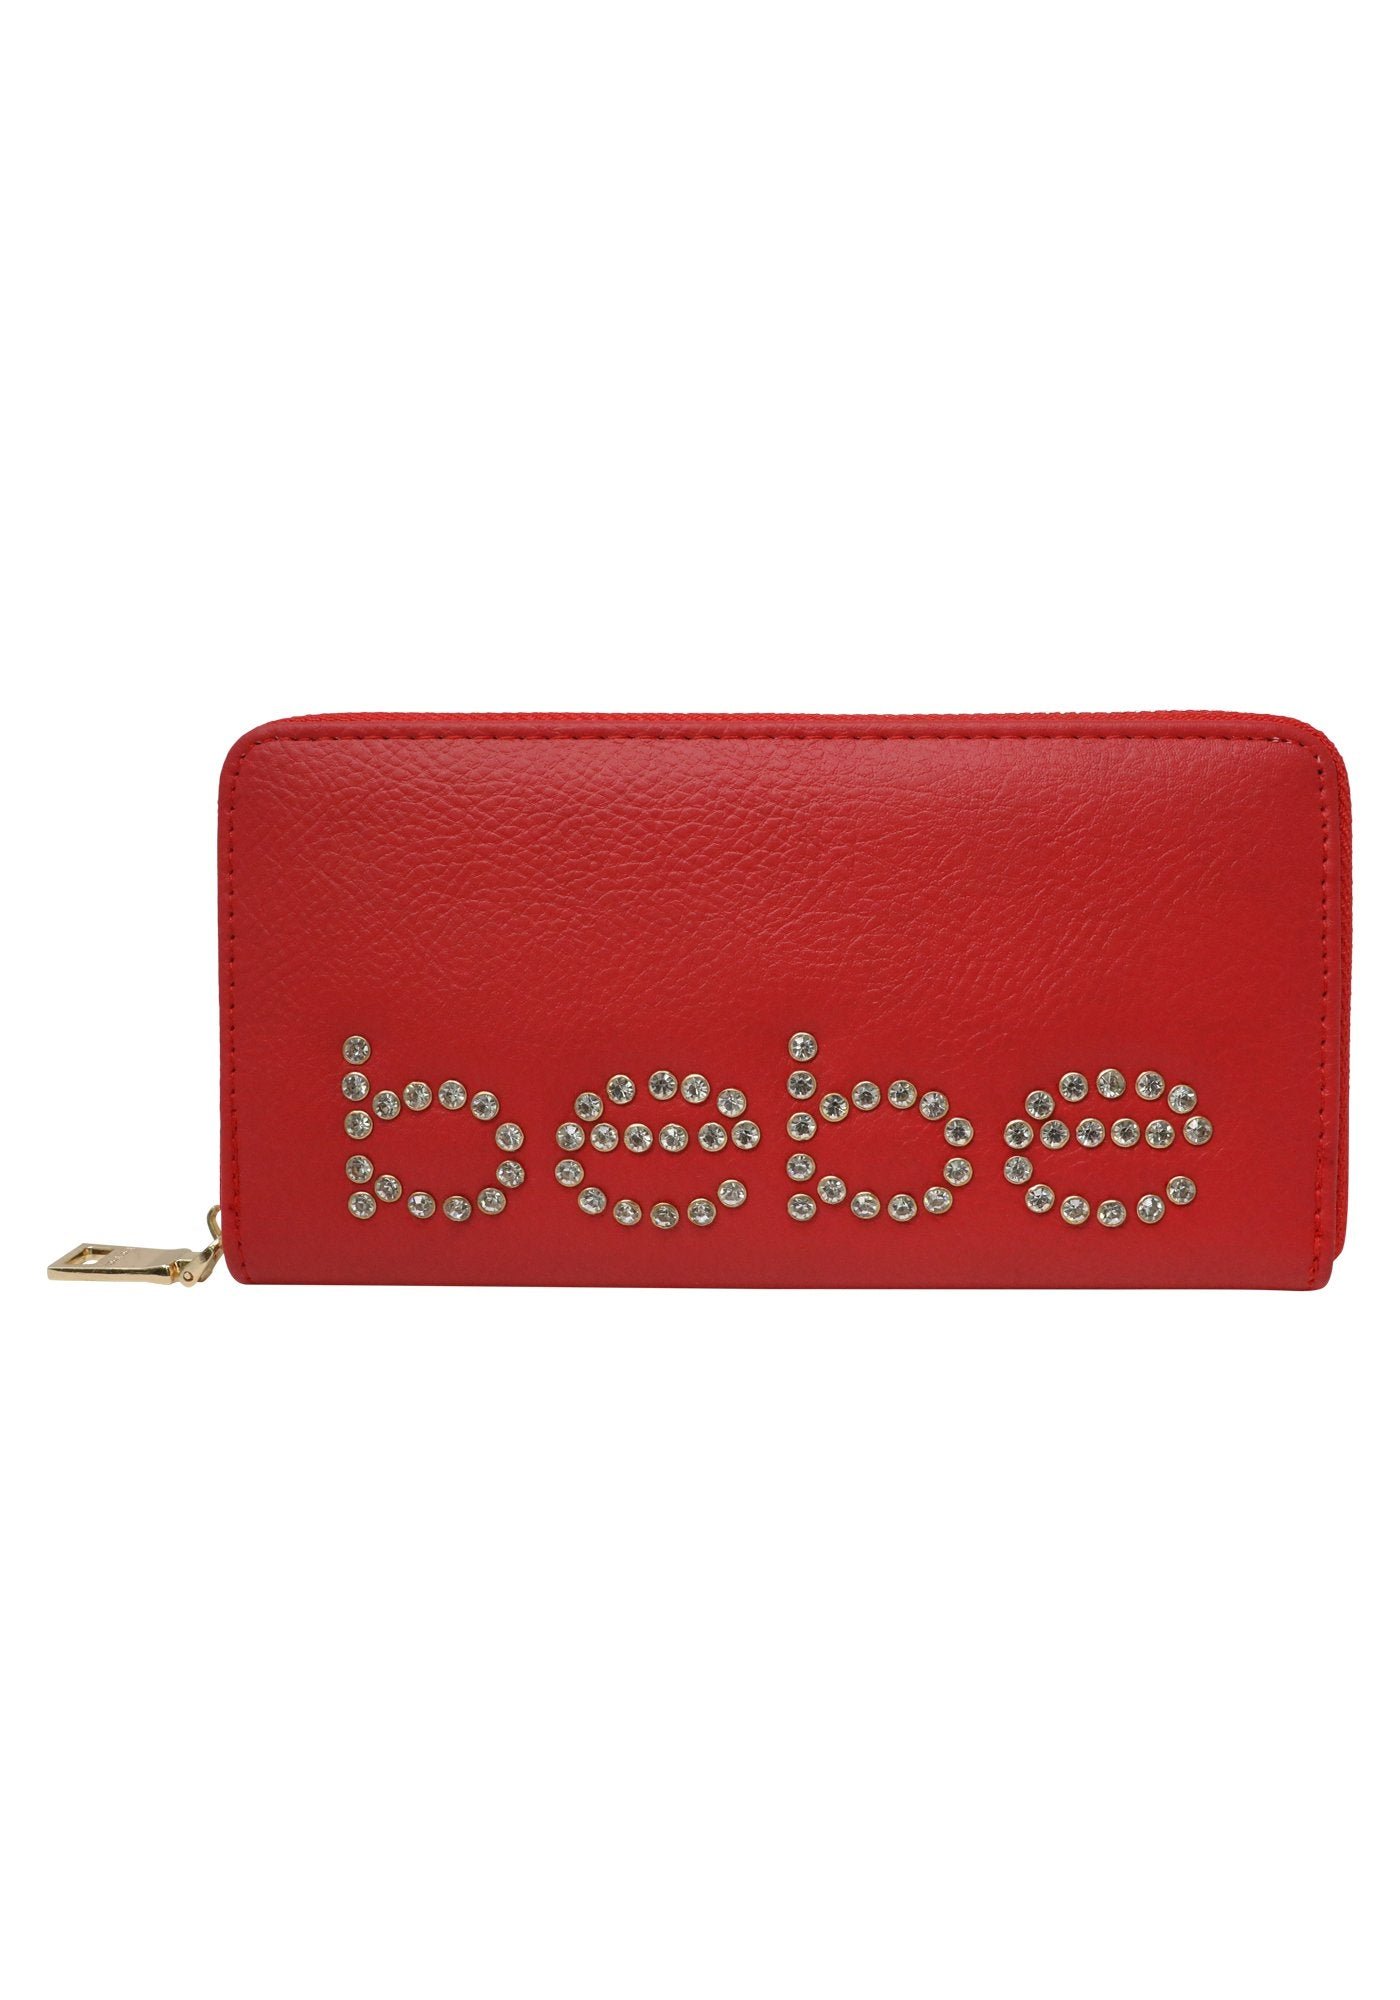 Bebe Women's Jetta Wallet, Size Mini in Red